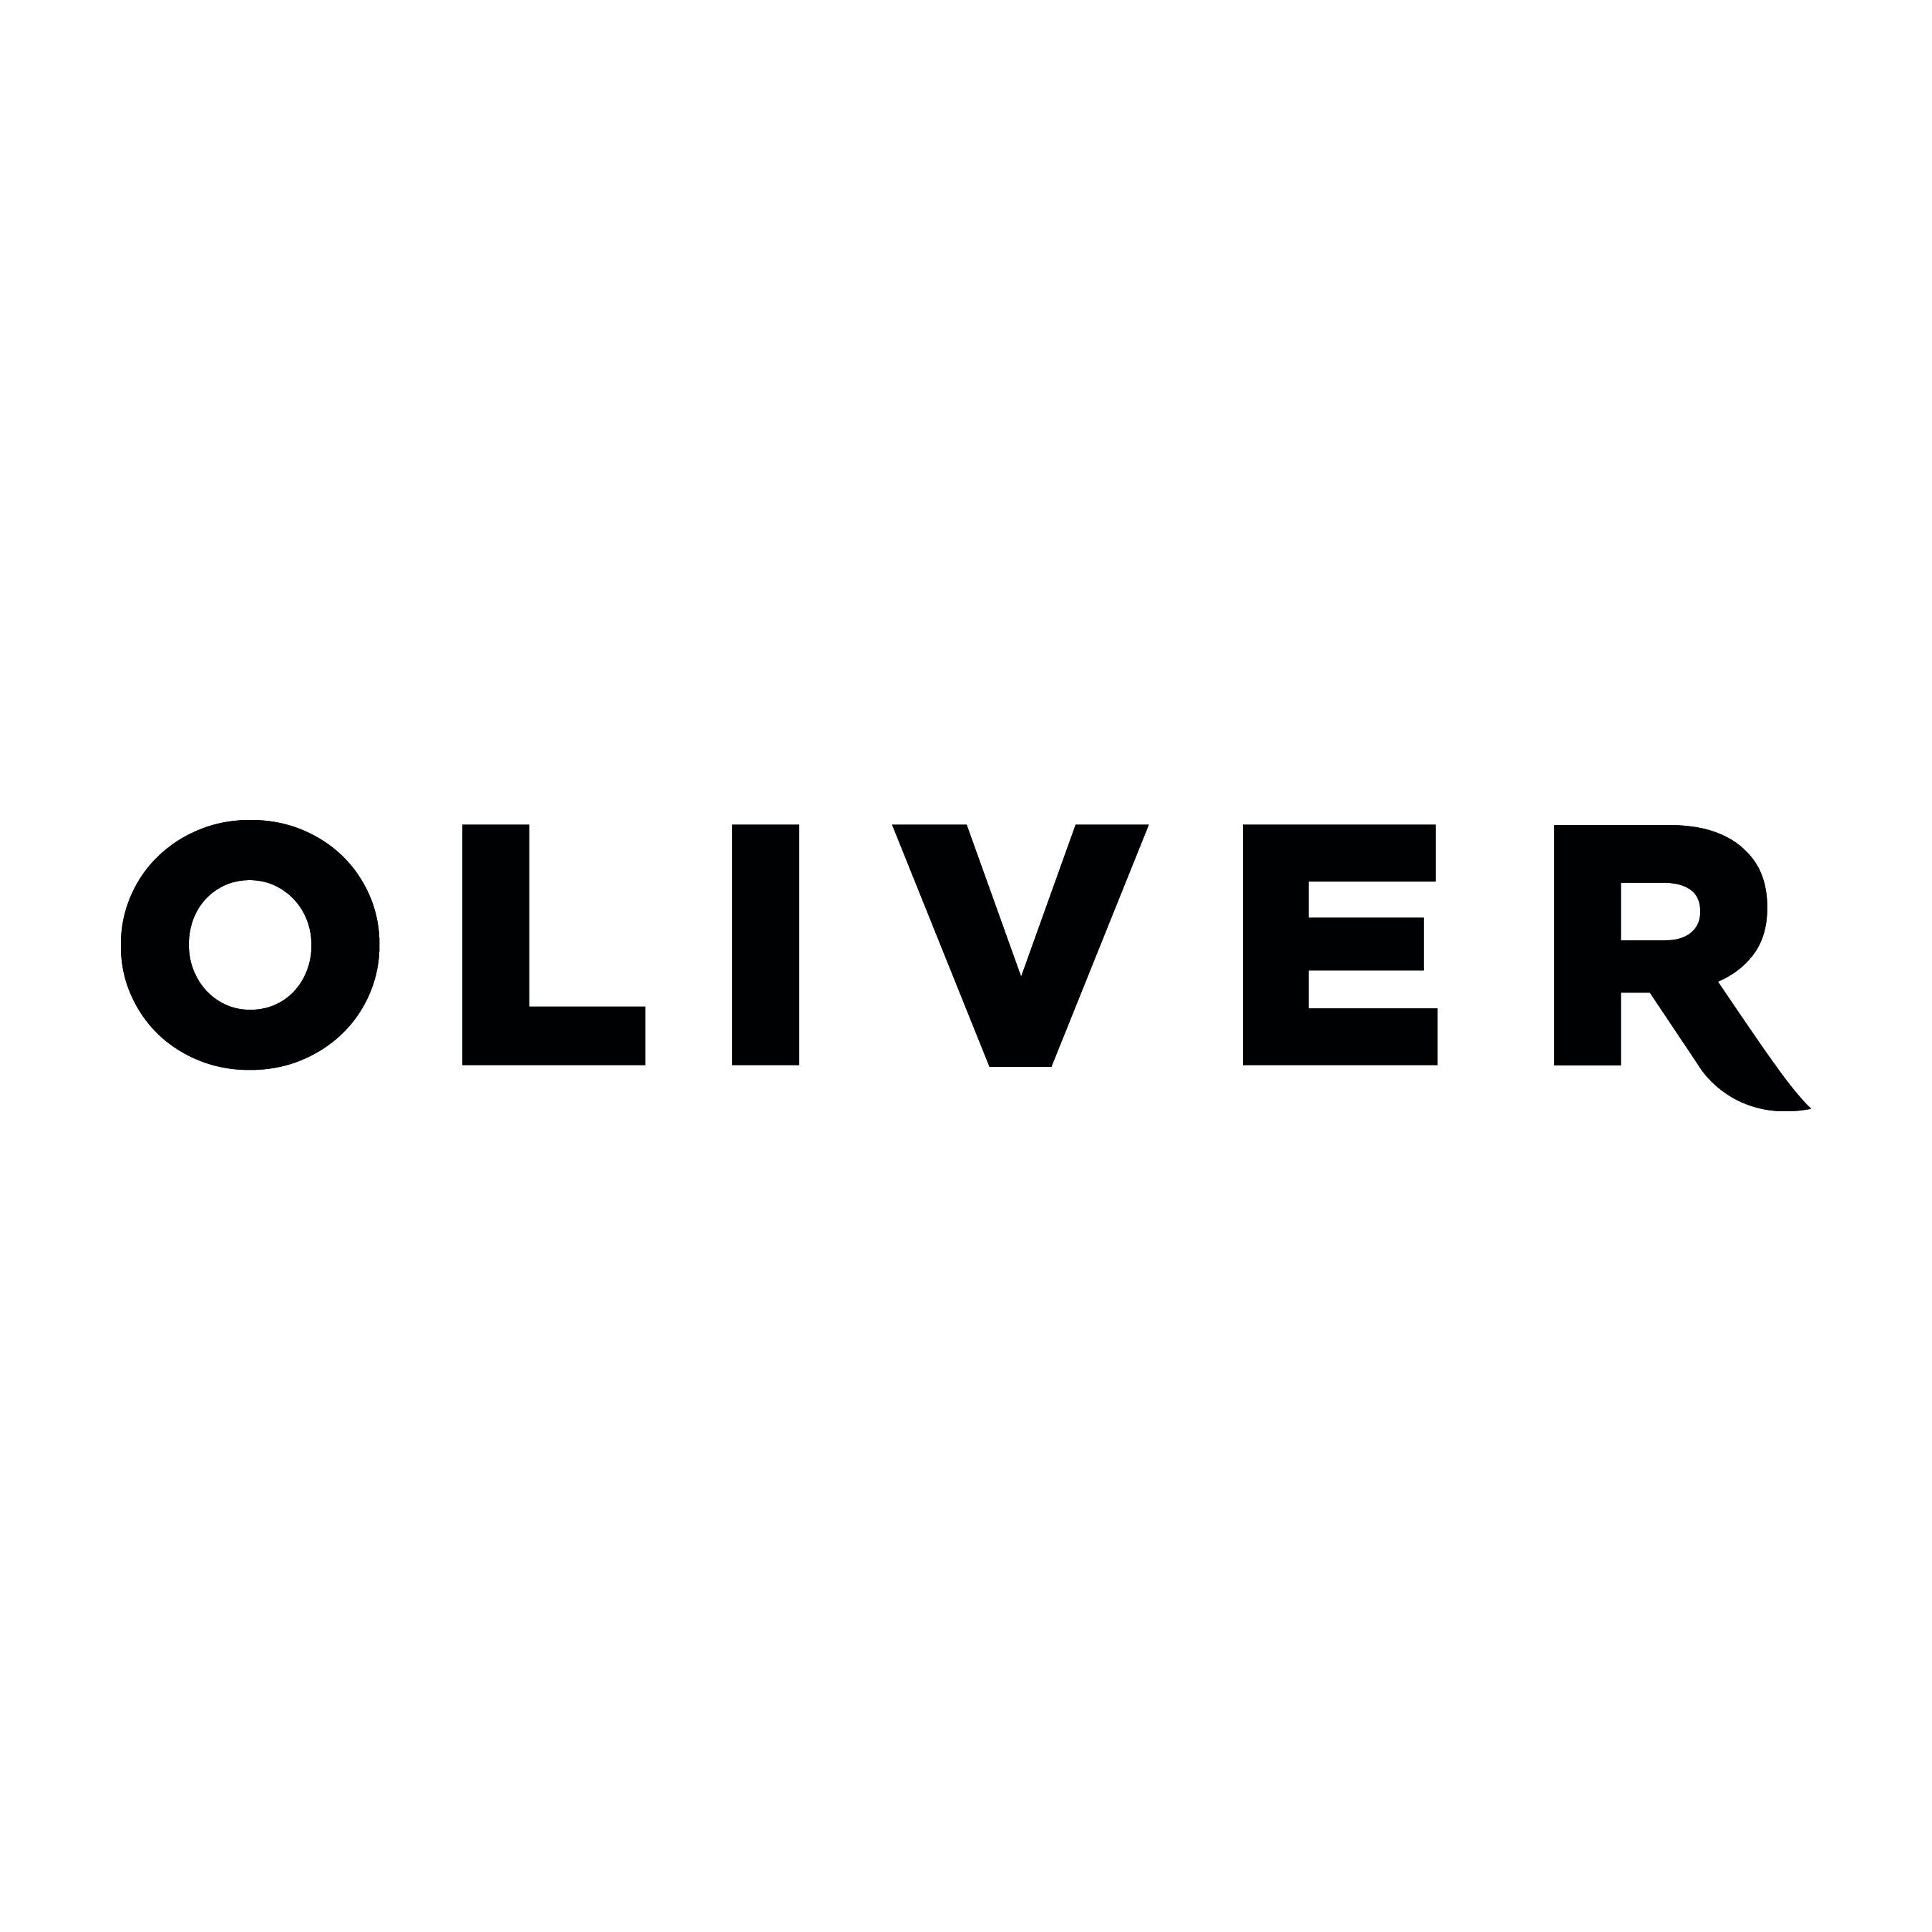 oliver lands courts in singapore and malaysia marketing starbucks logo images starbucks logo images